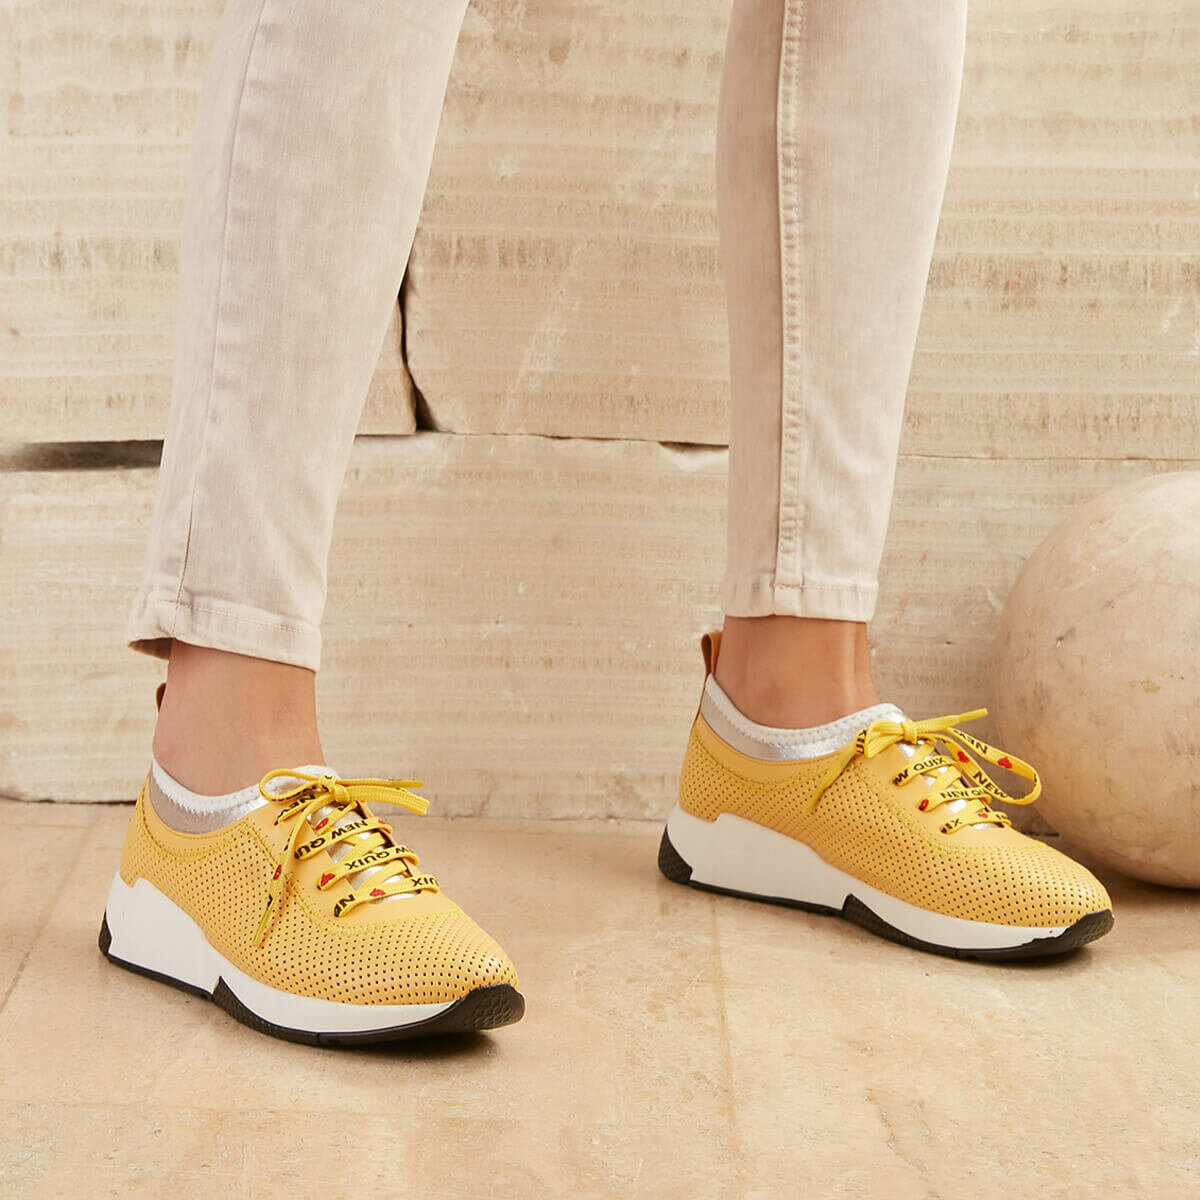 FLO QUIX51Z Yellow Women 'S Sneaker Shoes BUTIGO